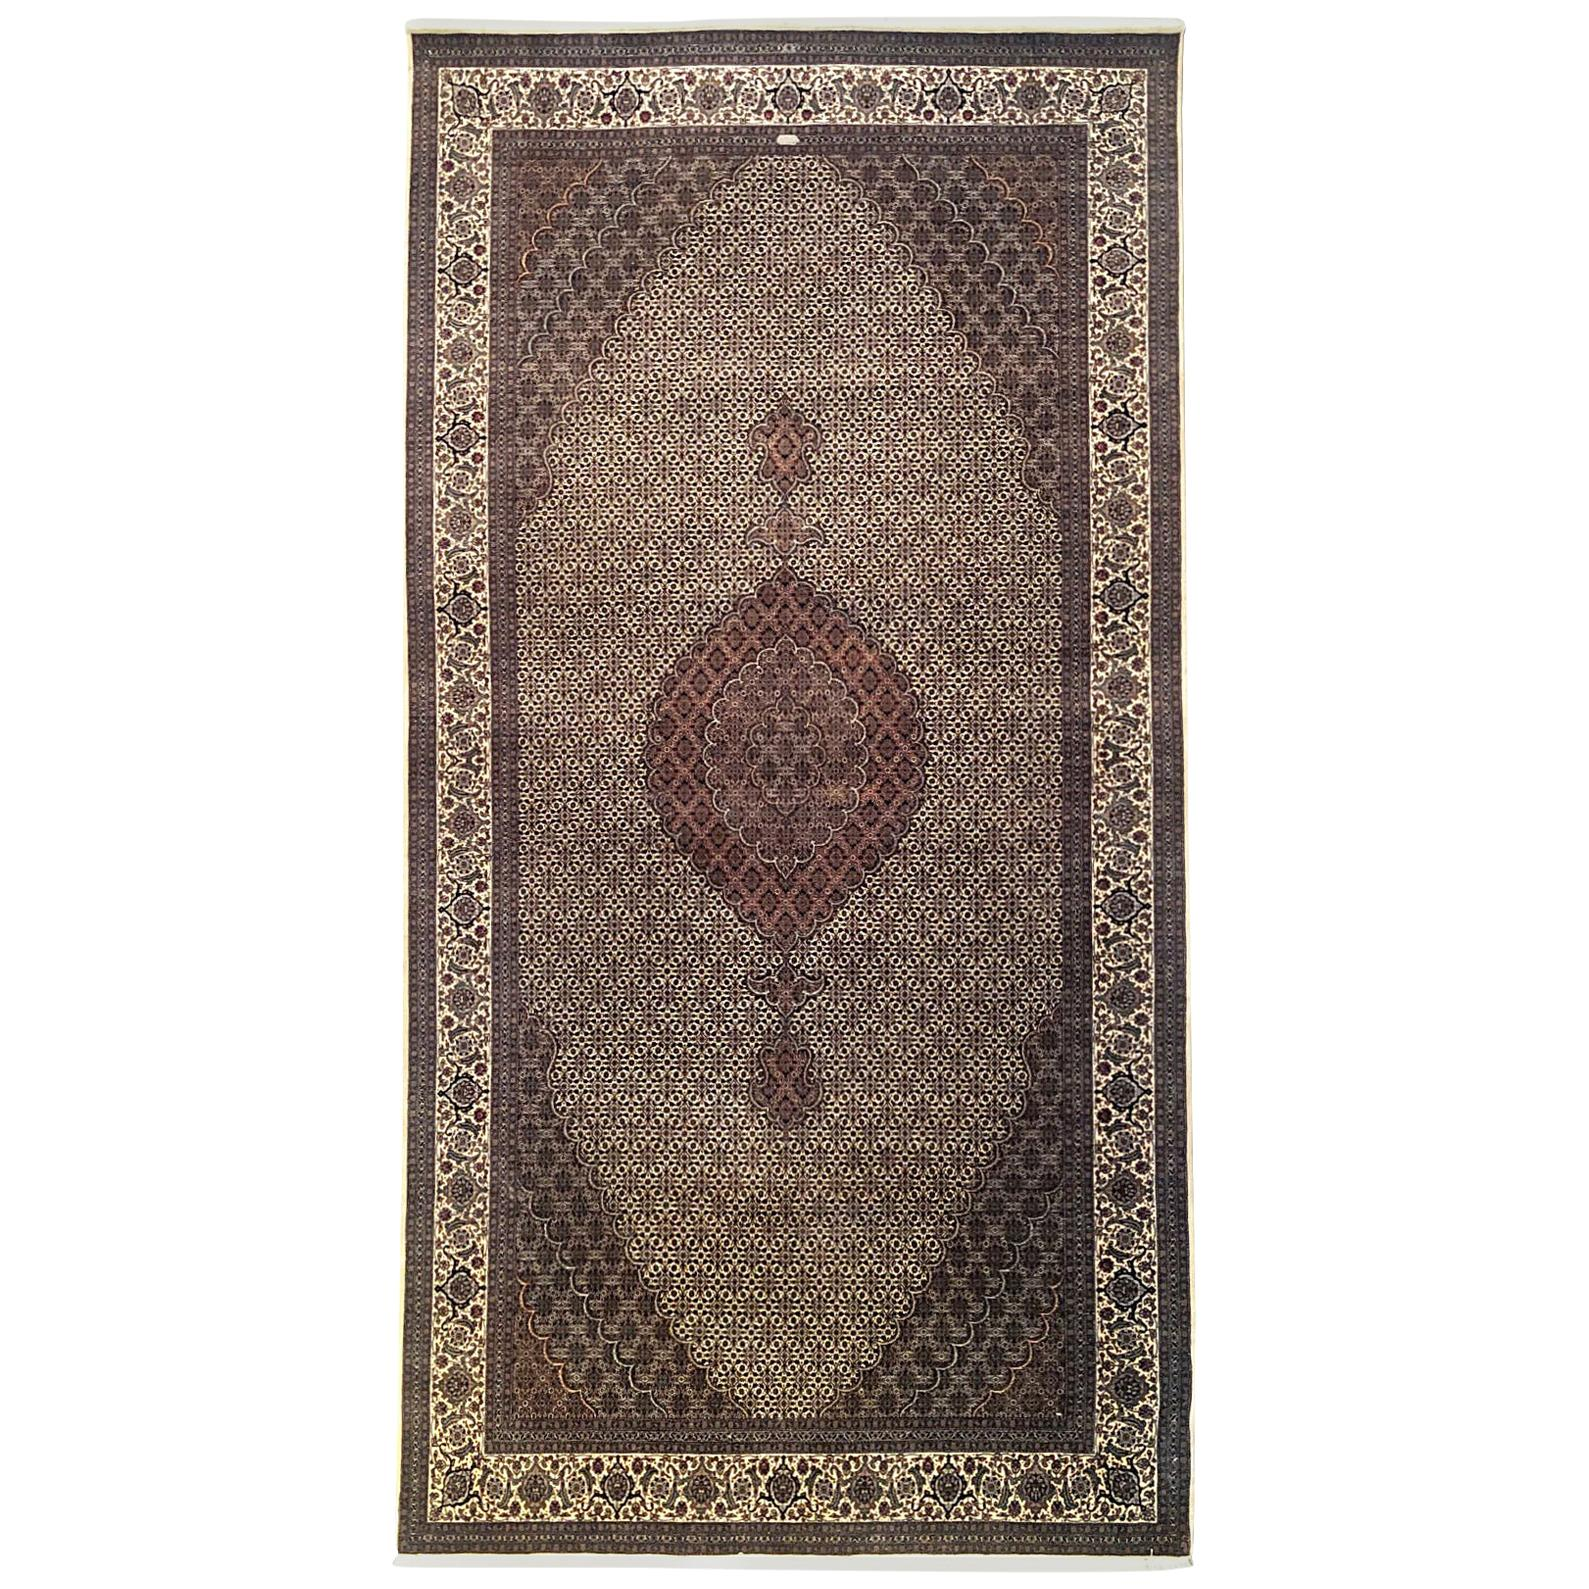 Authentic Persian Hand Knotted Medallion Cream Fish Design 'Mahi' Tabriz Rug